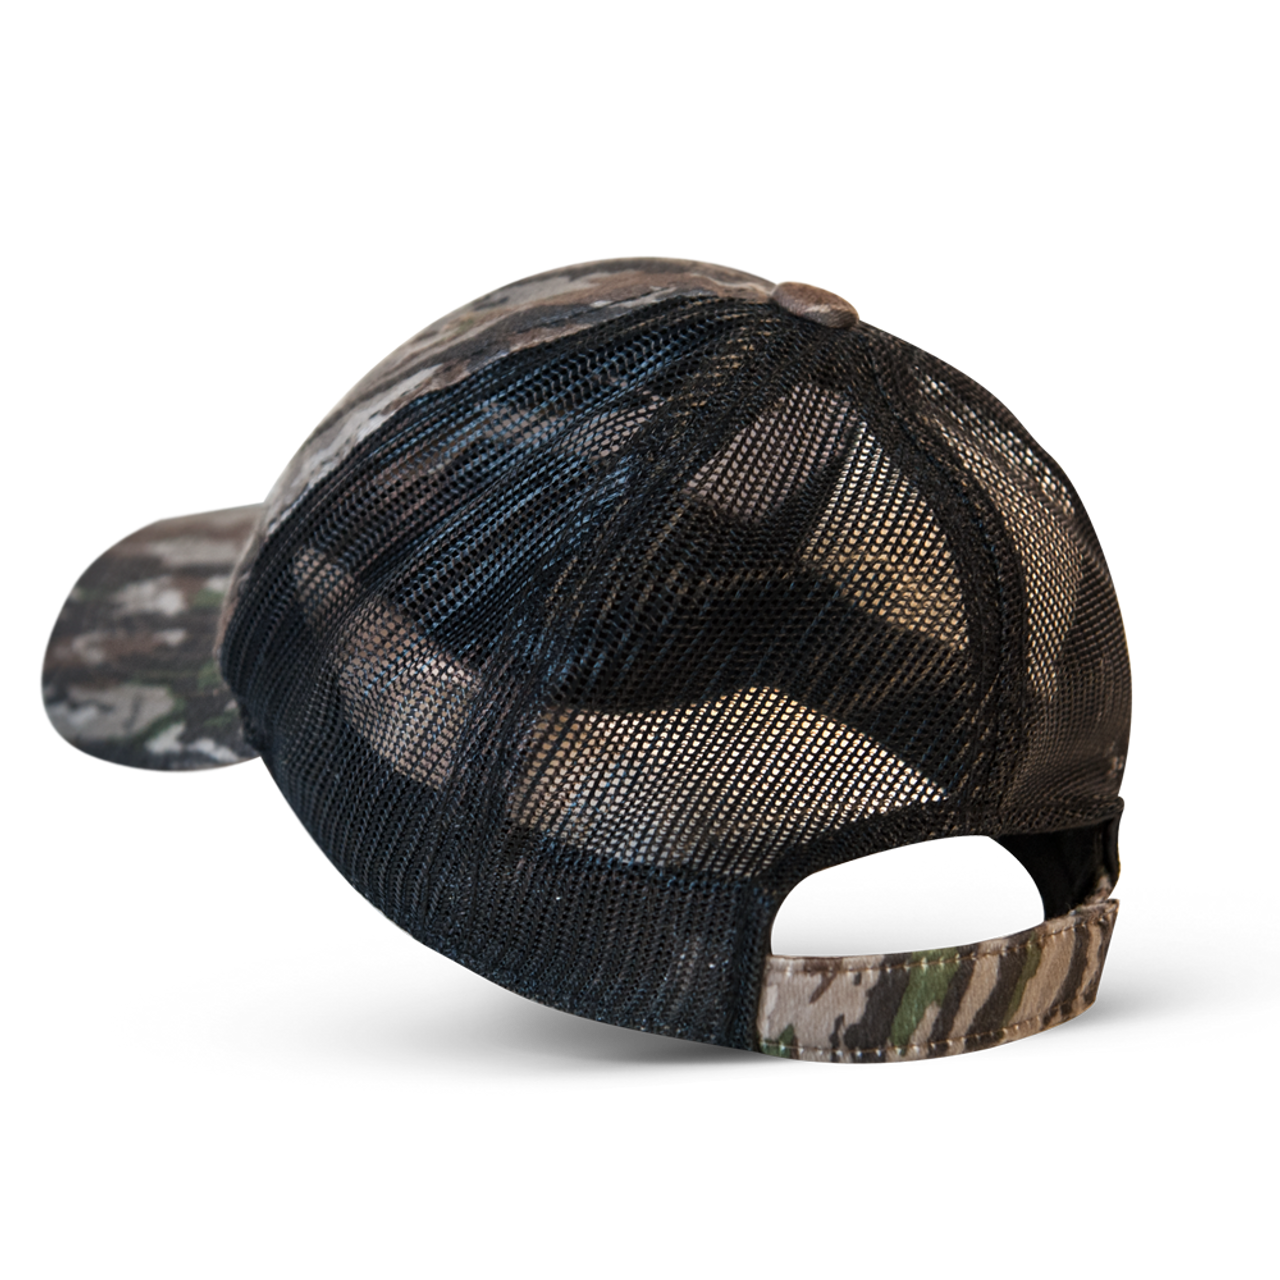 Original Real Tree Camo cap with black mesh and velcro closure.